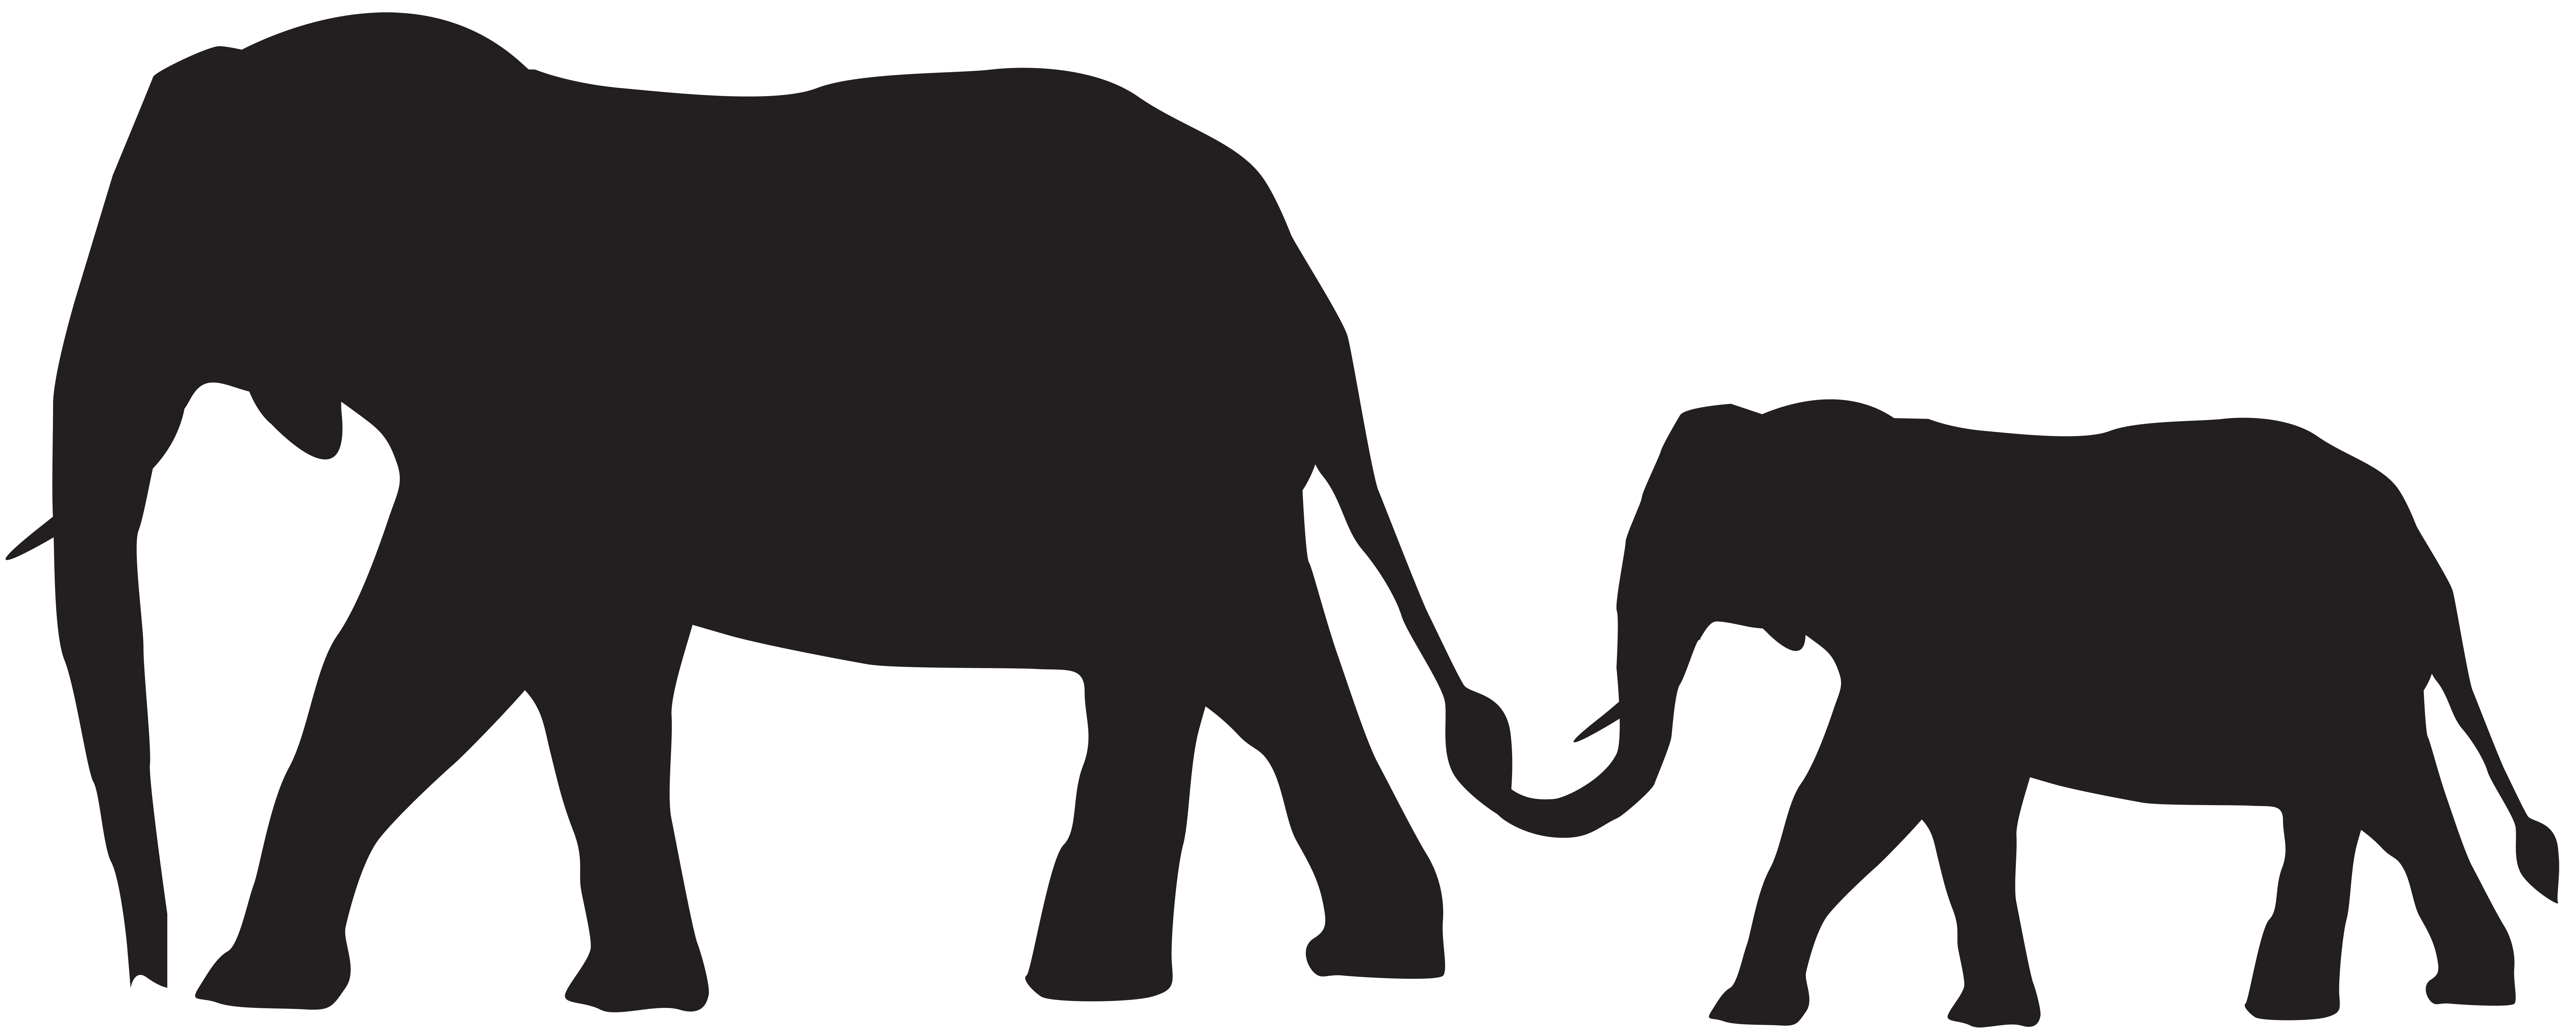 Mother And Baby Elephants Silhouette Png Clip Art Image Gallery Yopriceville High Quality Images And Transparent Png Free Clipart Vektor Ideer